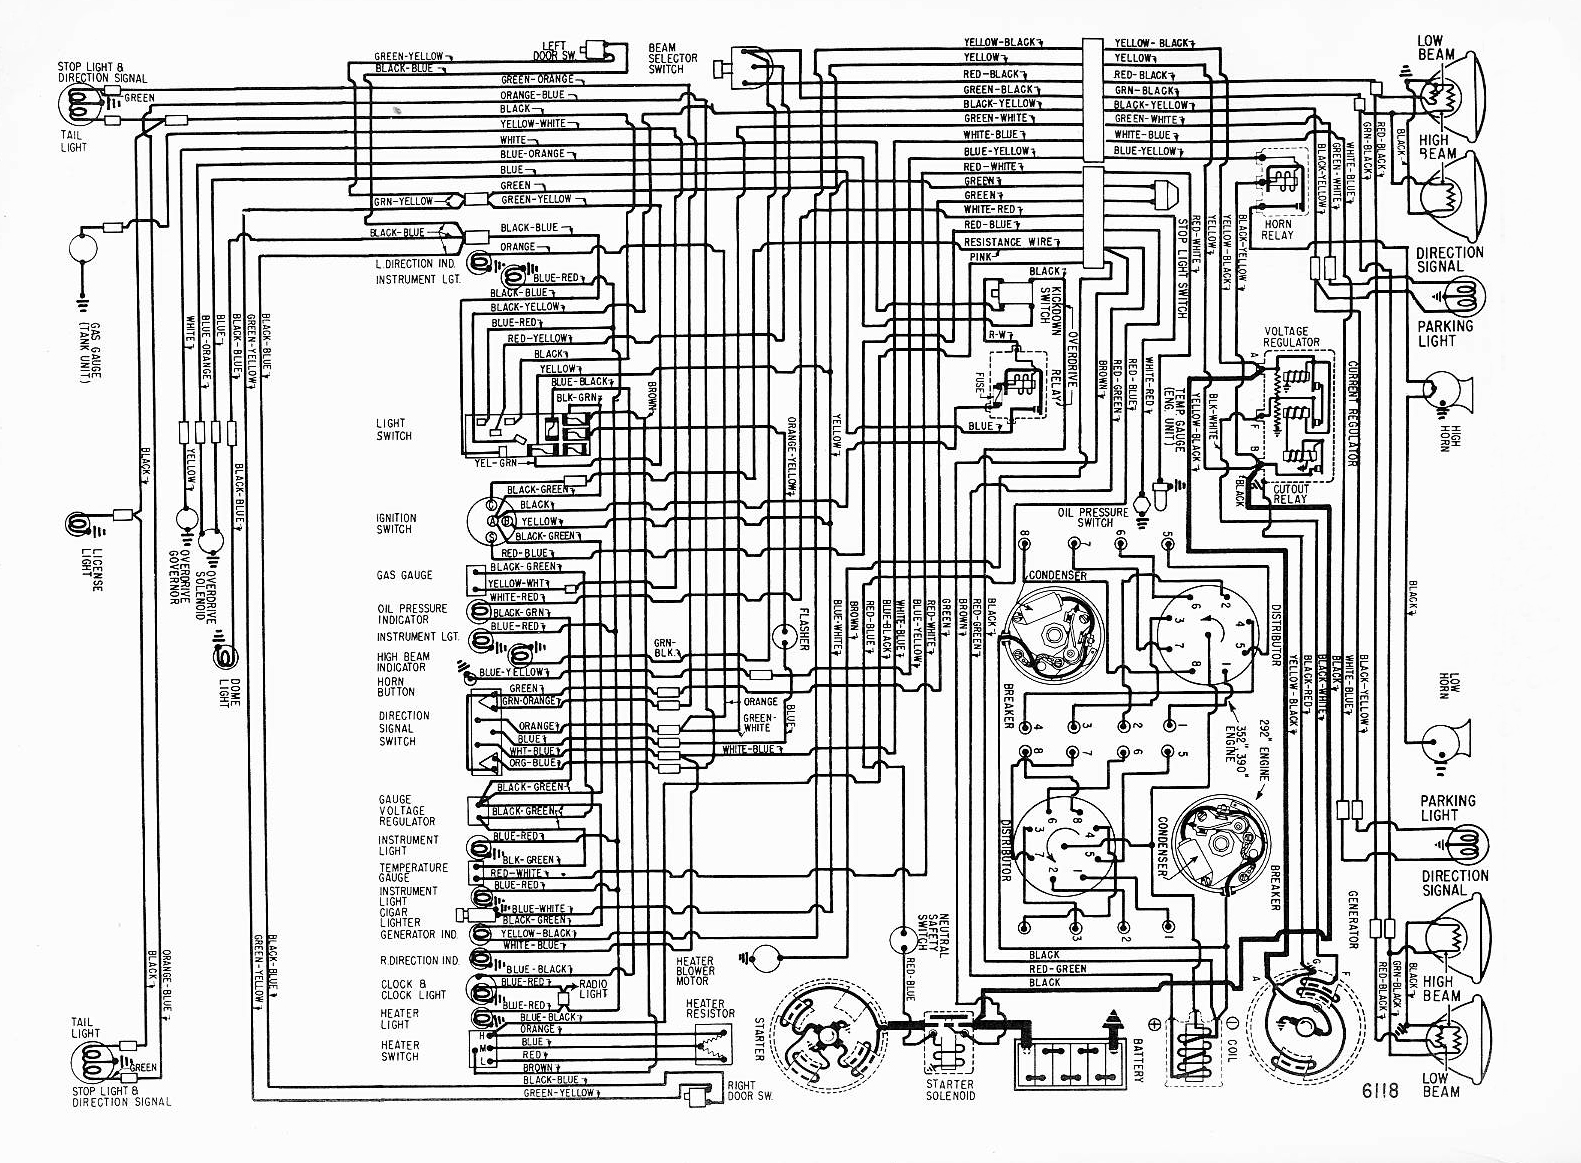 490221 keen corvette parts diagrams 1976 corvette starter wiring diagram at nearapp.co